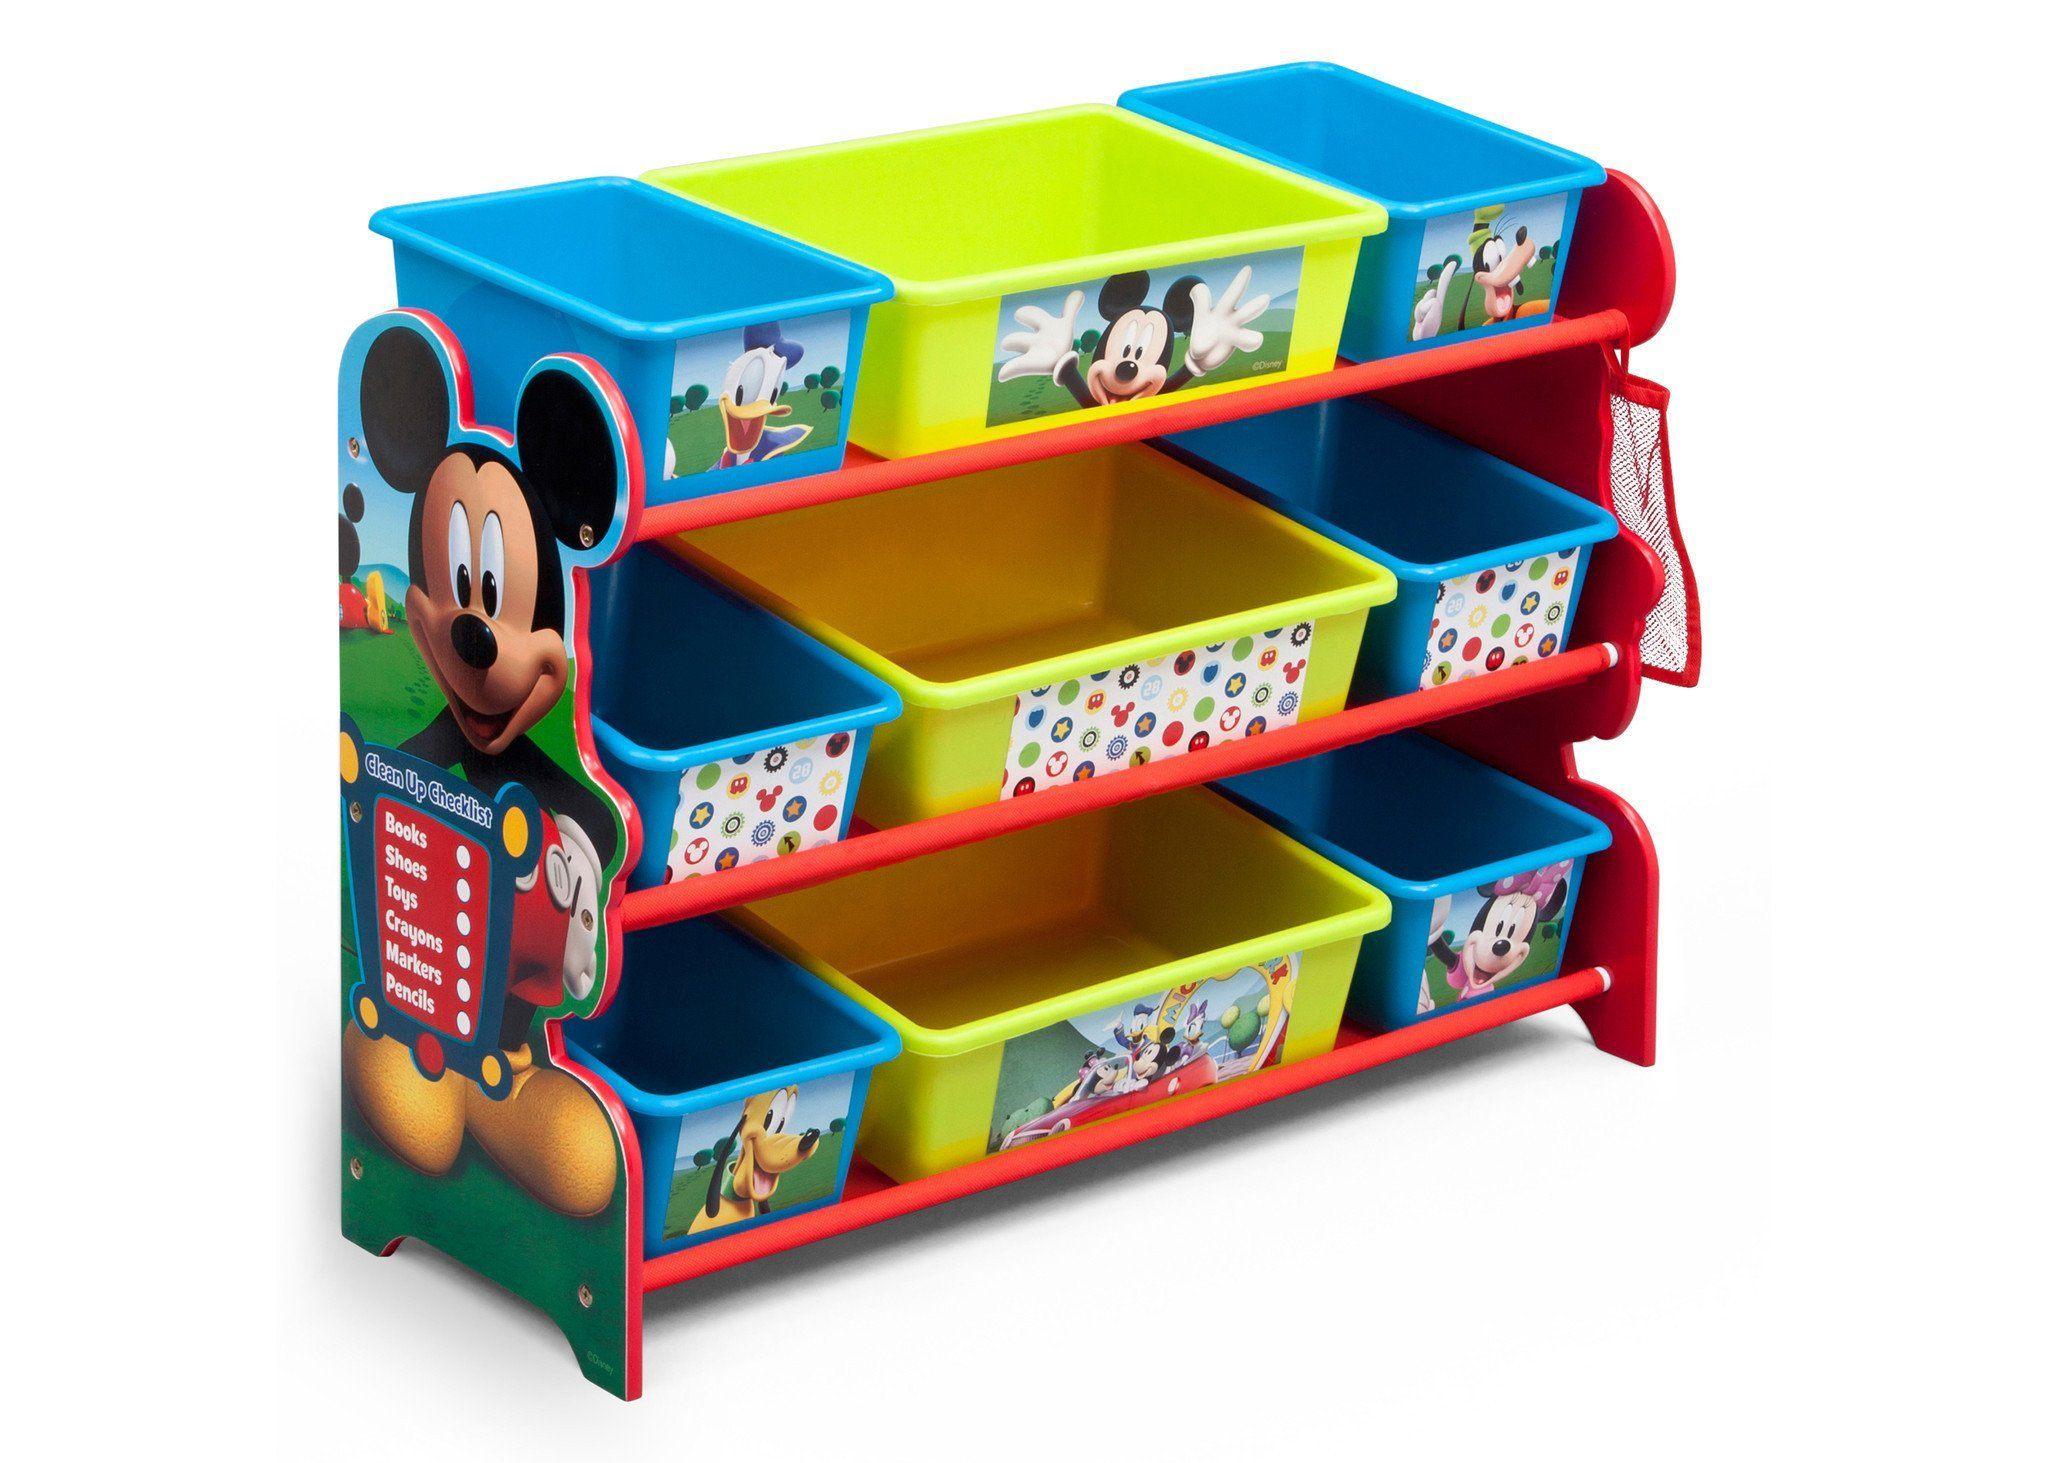 Delta Children Toy Box White: The Best Way To Organize Those Toys